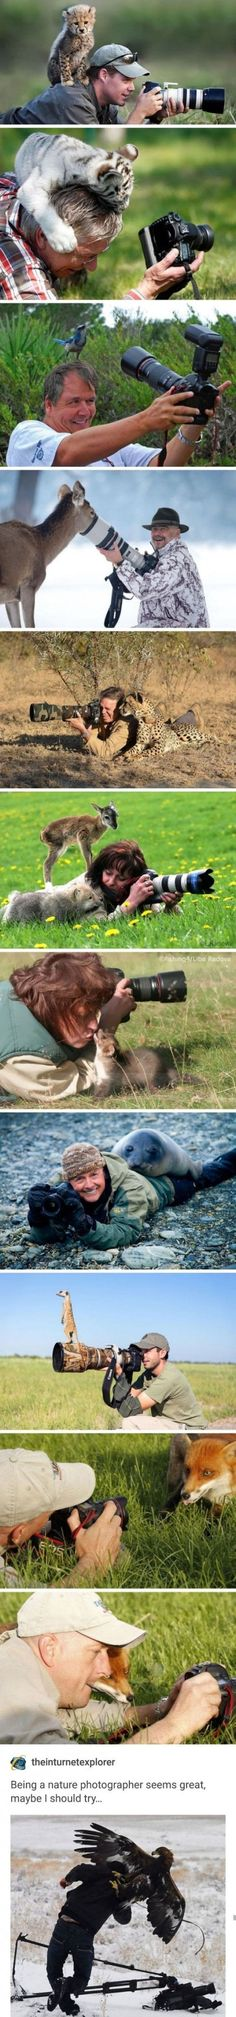 Online Photography Jobs - This is why I don't open iFunny in public Photography Jobs Online Animal Jokes, Funny Animal Memes, Funny Animal Pictures, Funny Memes, Funny Photos, Cute Little Animals, Cute Funny Animals, Funny Cute, Hilarious